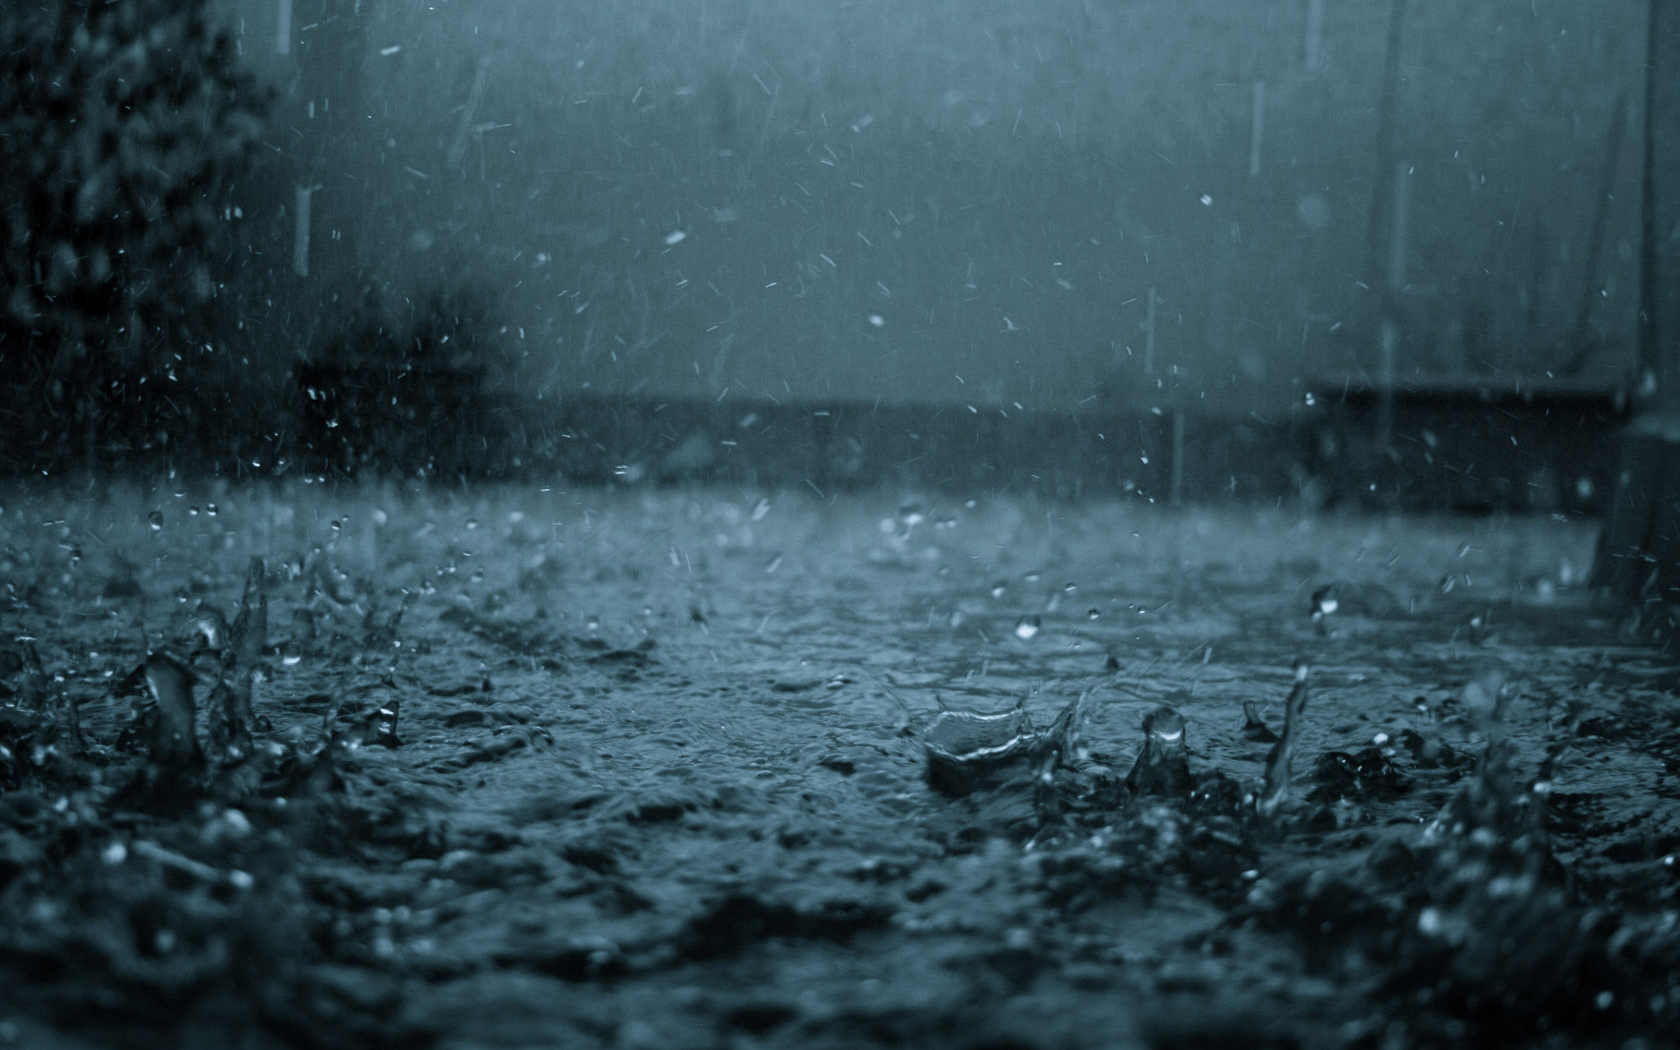 Rainy Wallpaper HD